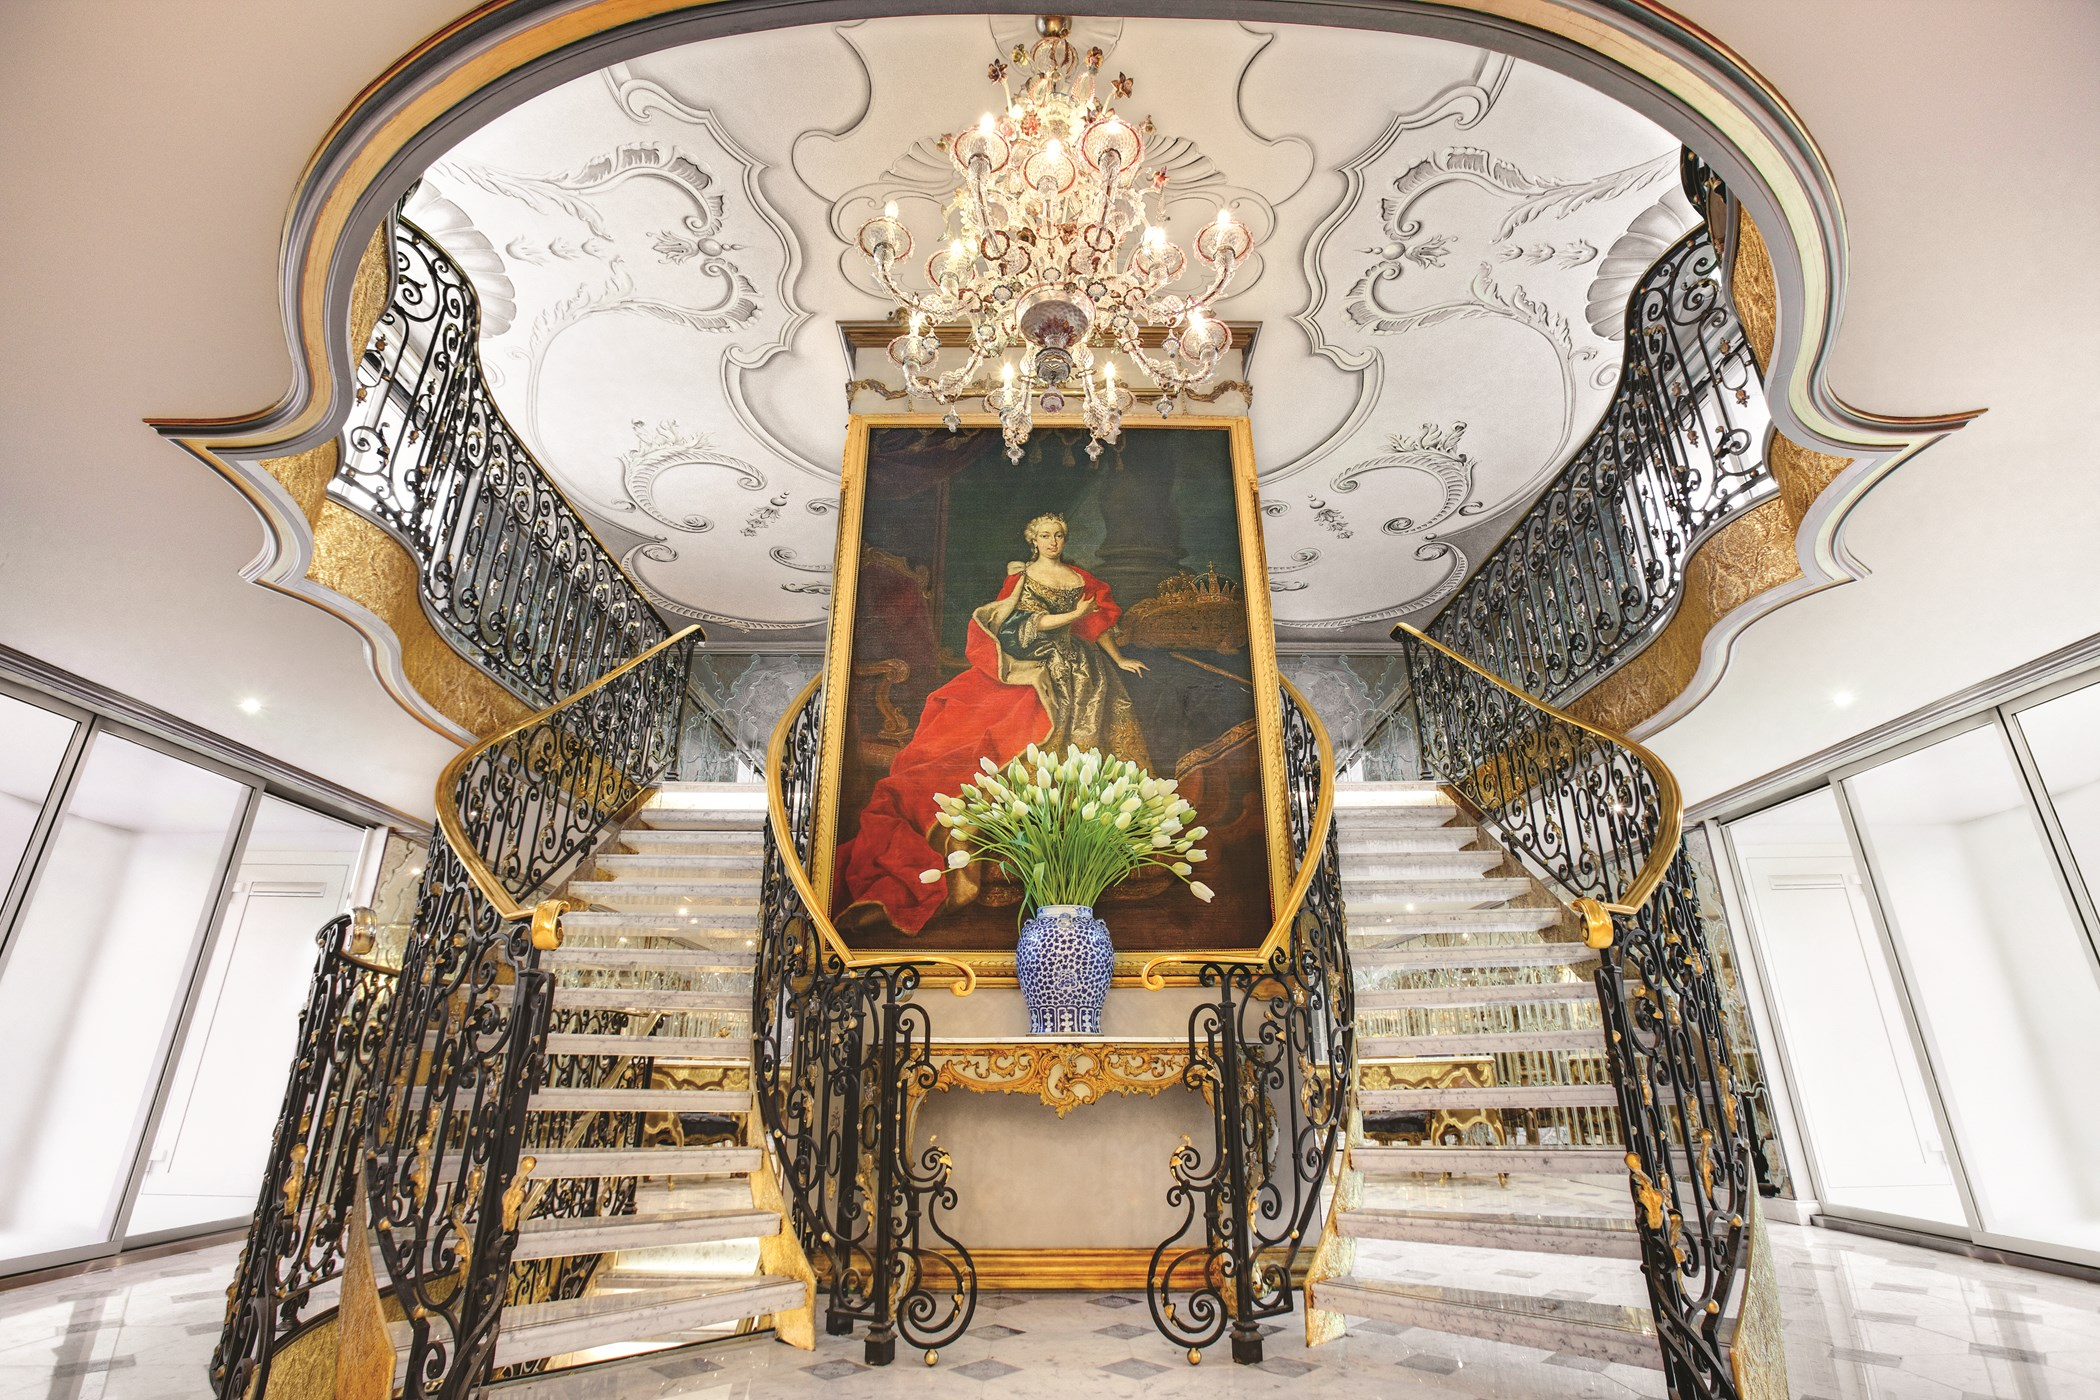 The 3 metre, 18th century oil painting of the Archduchess, purchased at Christie's, presiding over a hand-gilded balustrade in the ship